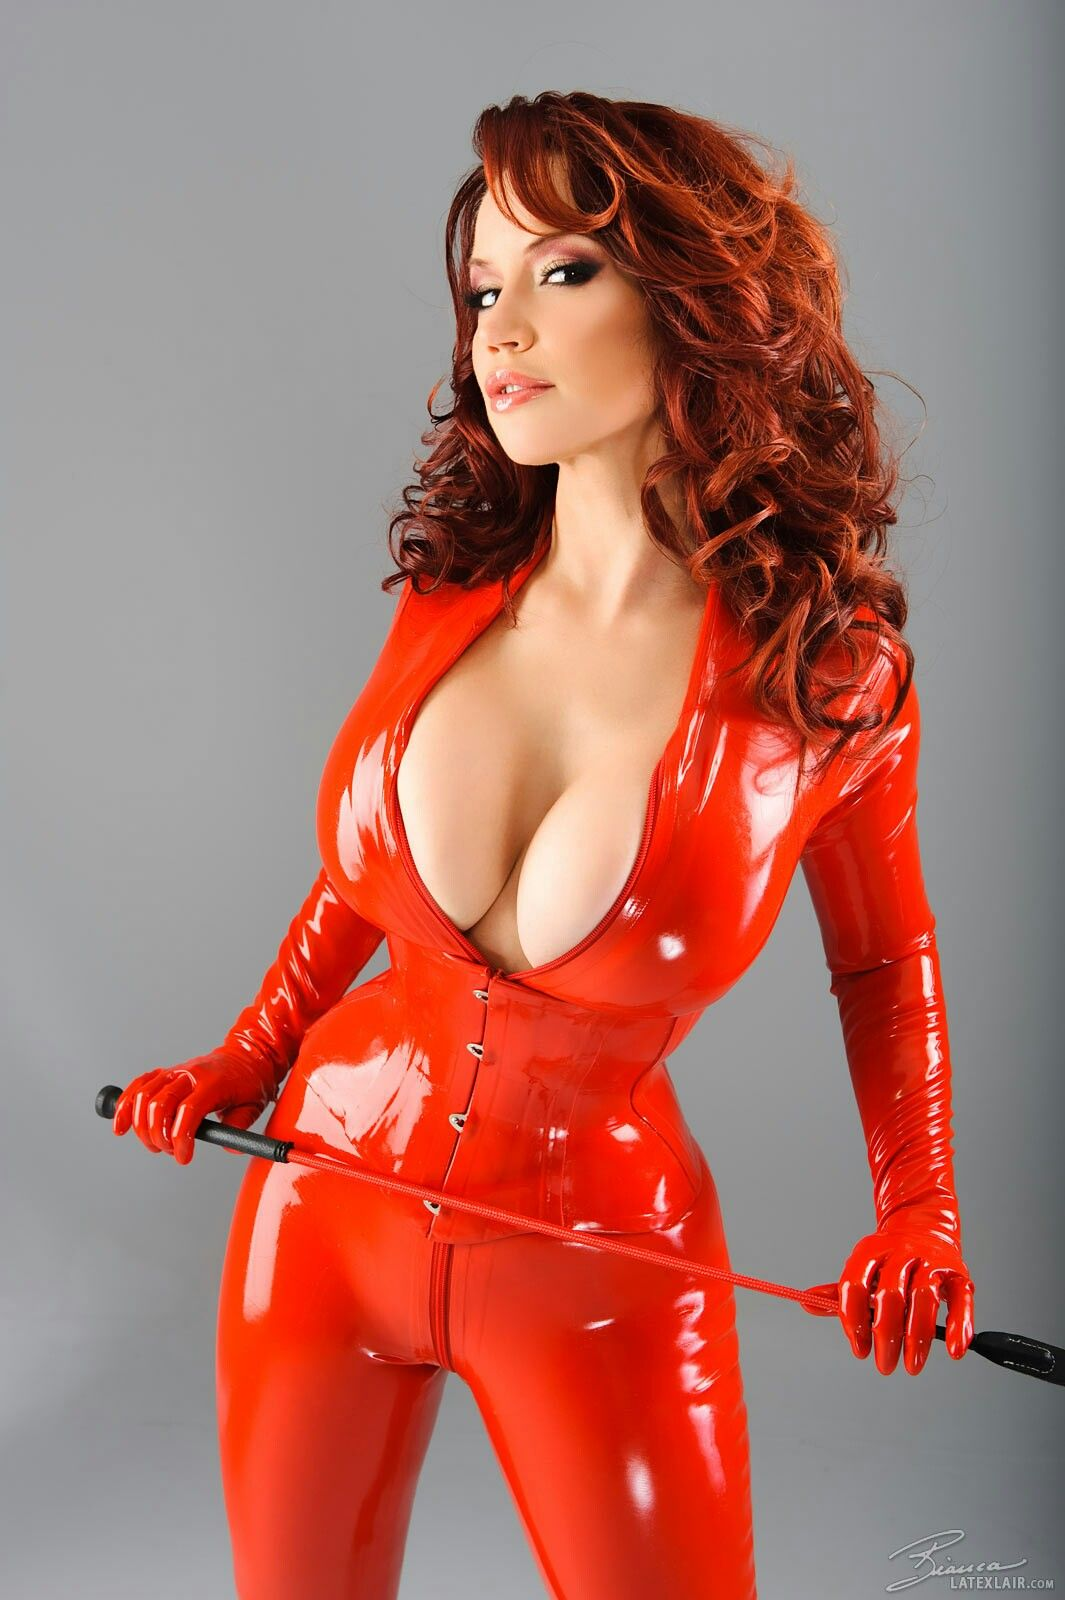 Bianca beauchamp latex mistress